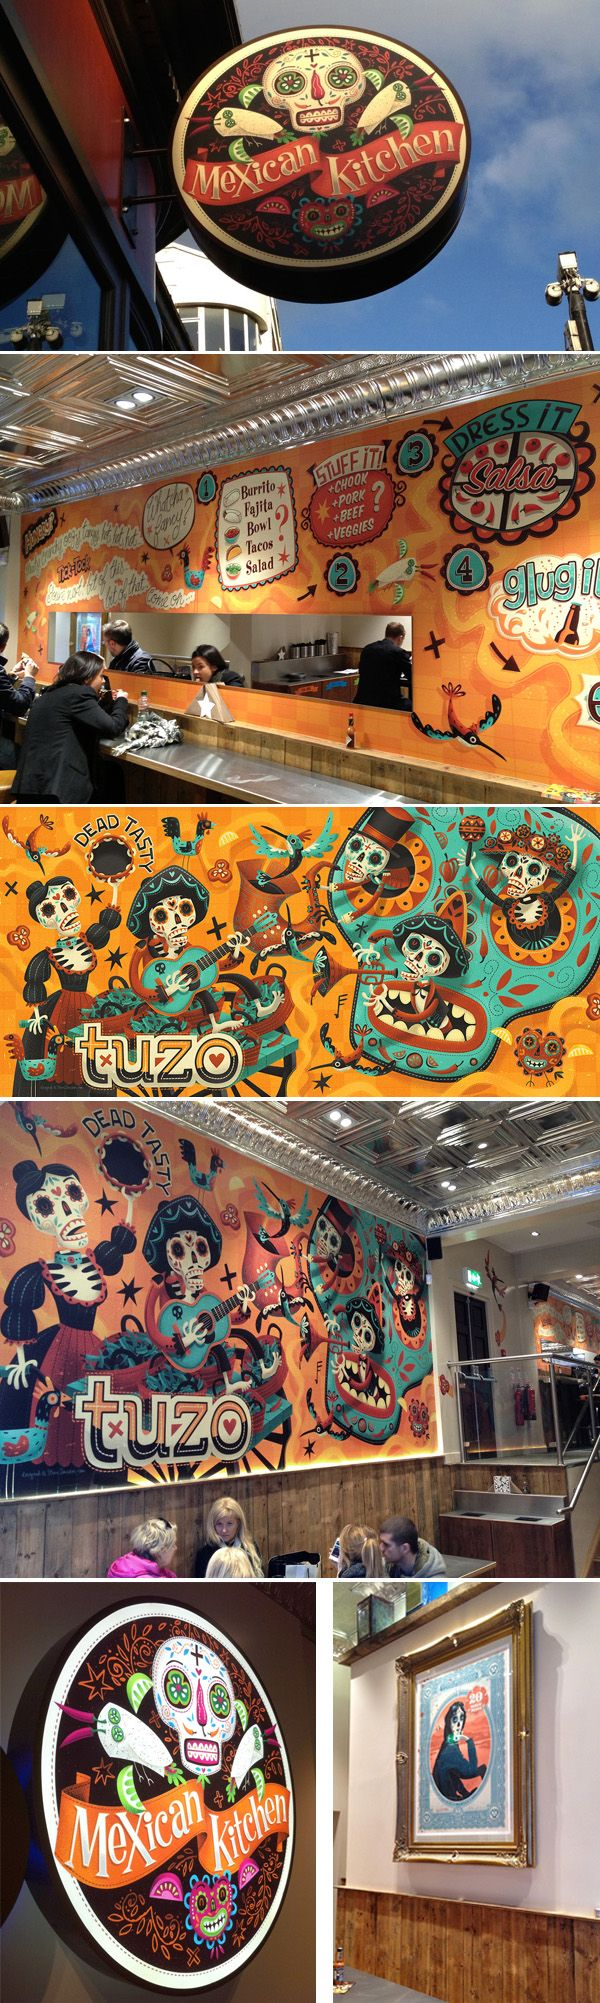 We can design, produce, and install these kind of eye popping graphics for your space.  Tuzo - Mexican Kitchen Illustrations